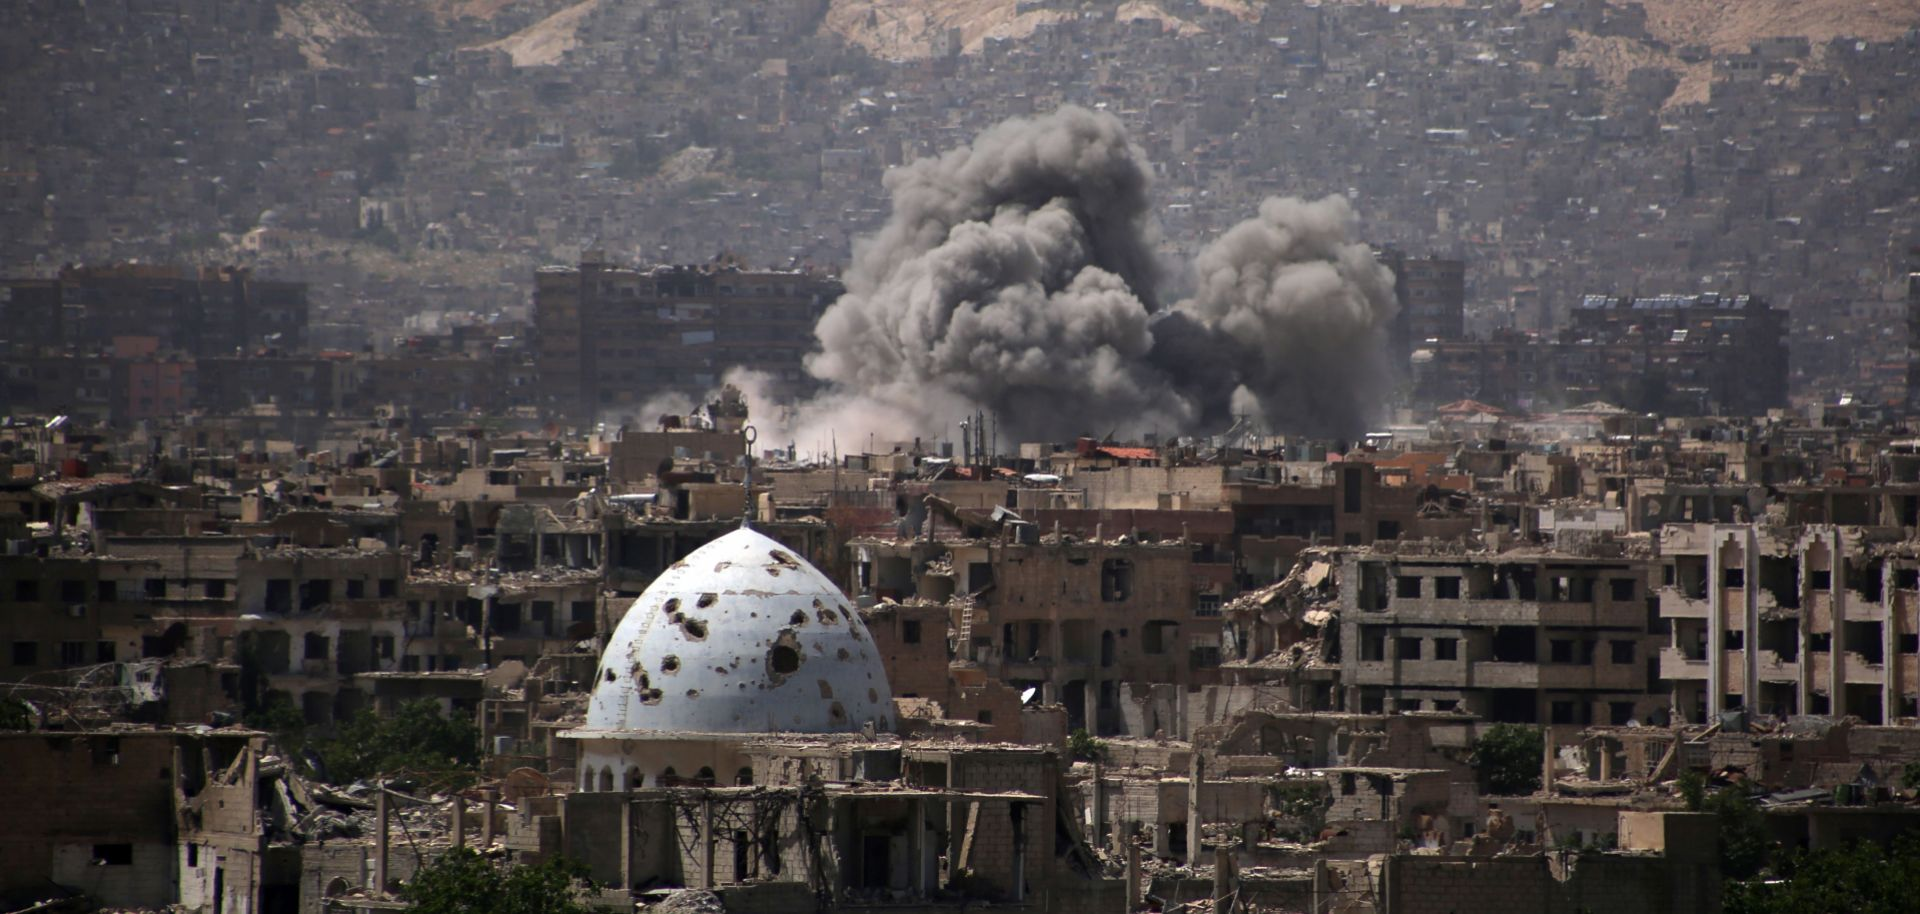 Smoke rises from an airstrike on Jobar, a rebel-held district on the eastern outskirts of Damascus. As Russia is discovering, it will be difficult to disengage from the conflict it has become embroiled in.